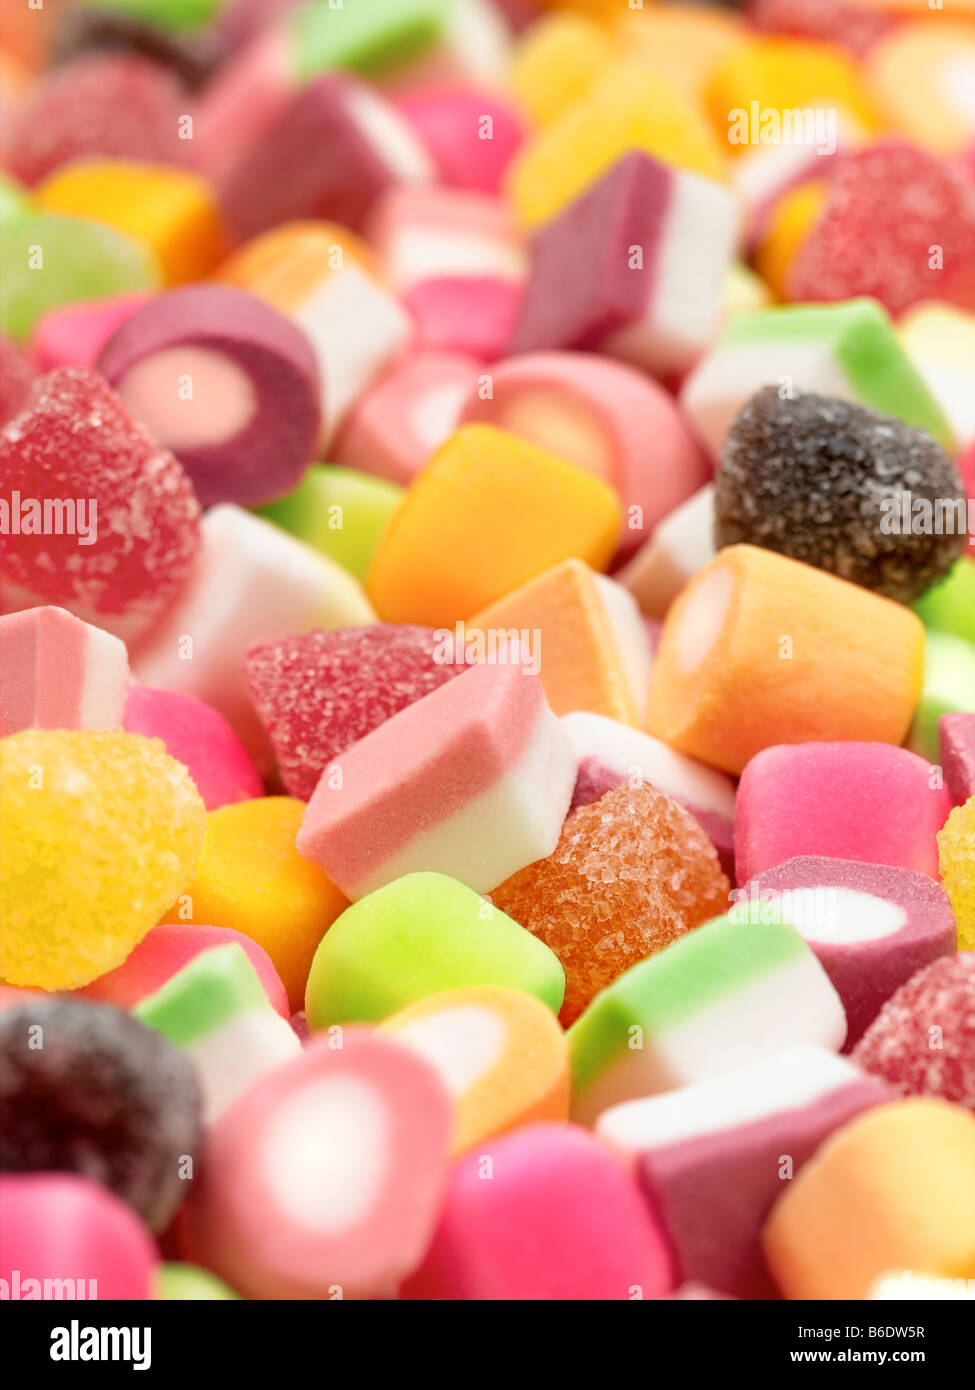 Dolly Mixtures - Stock Image